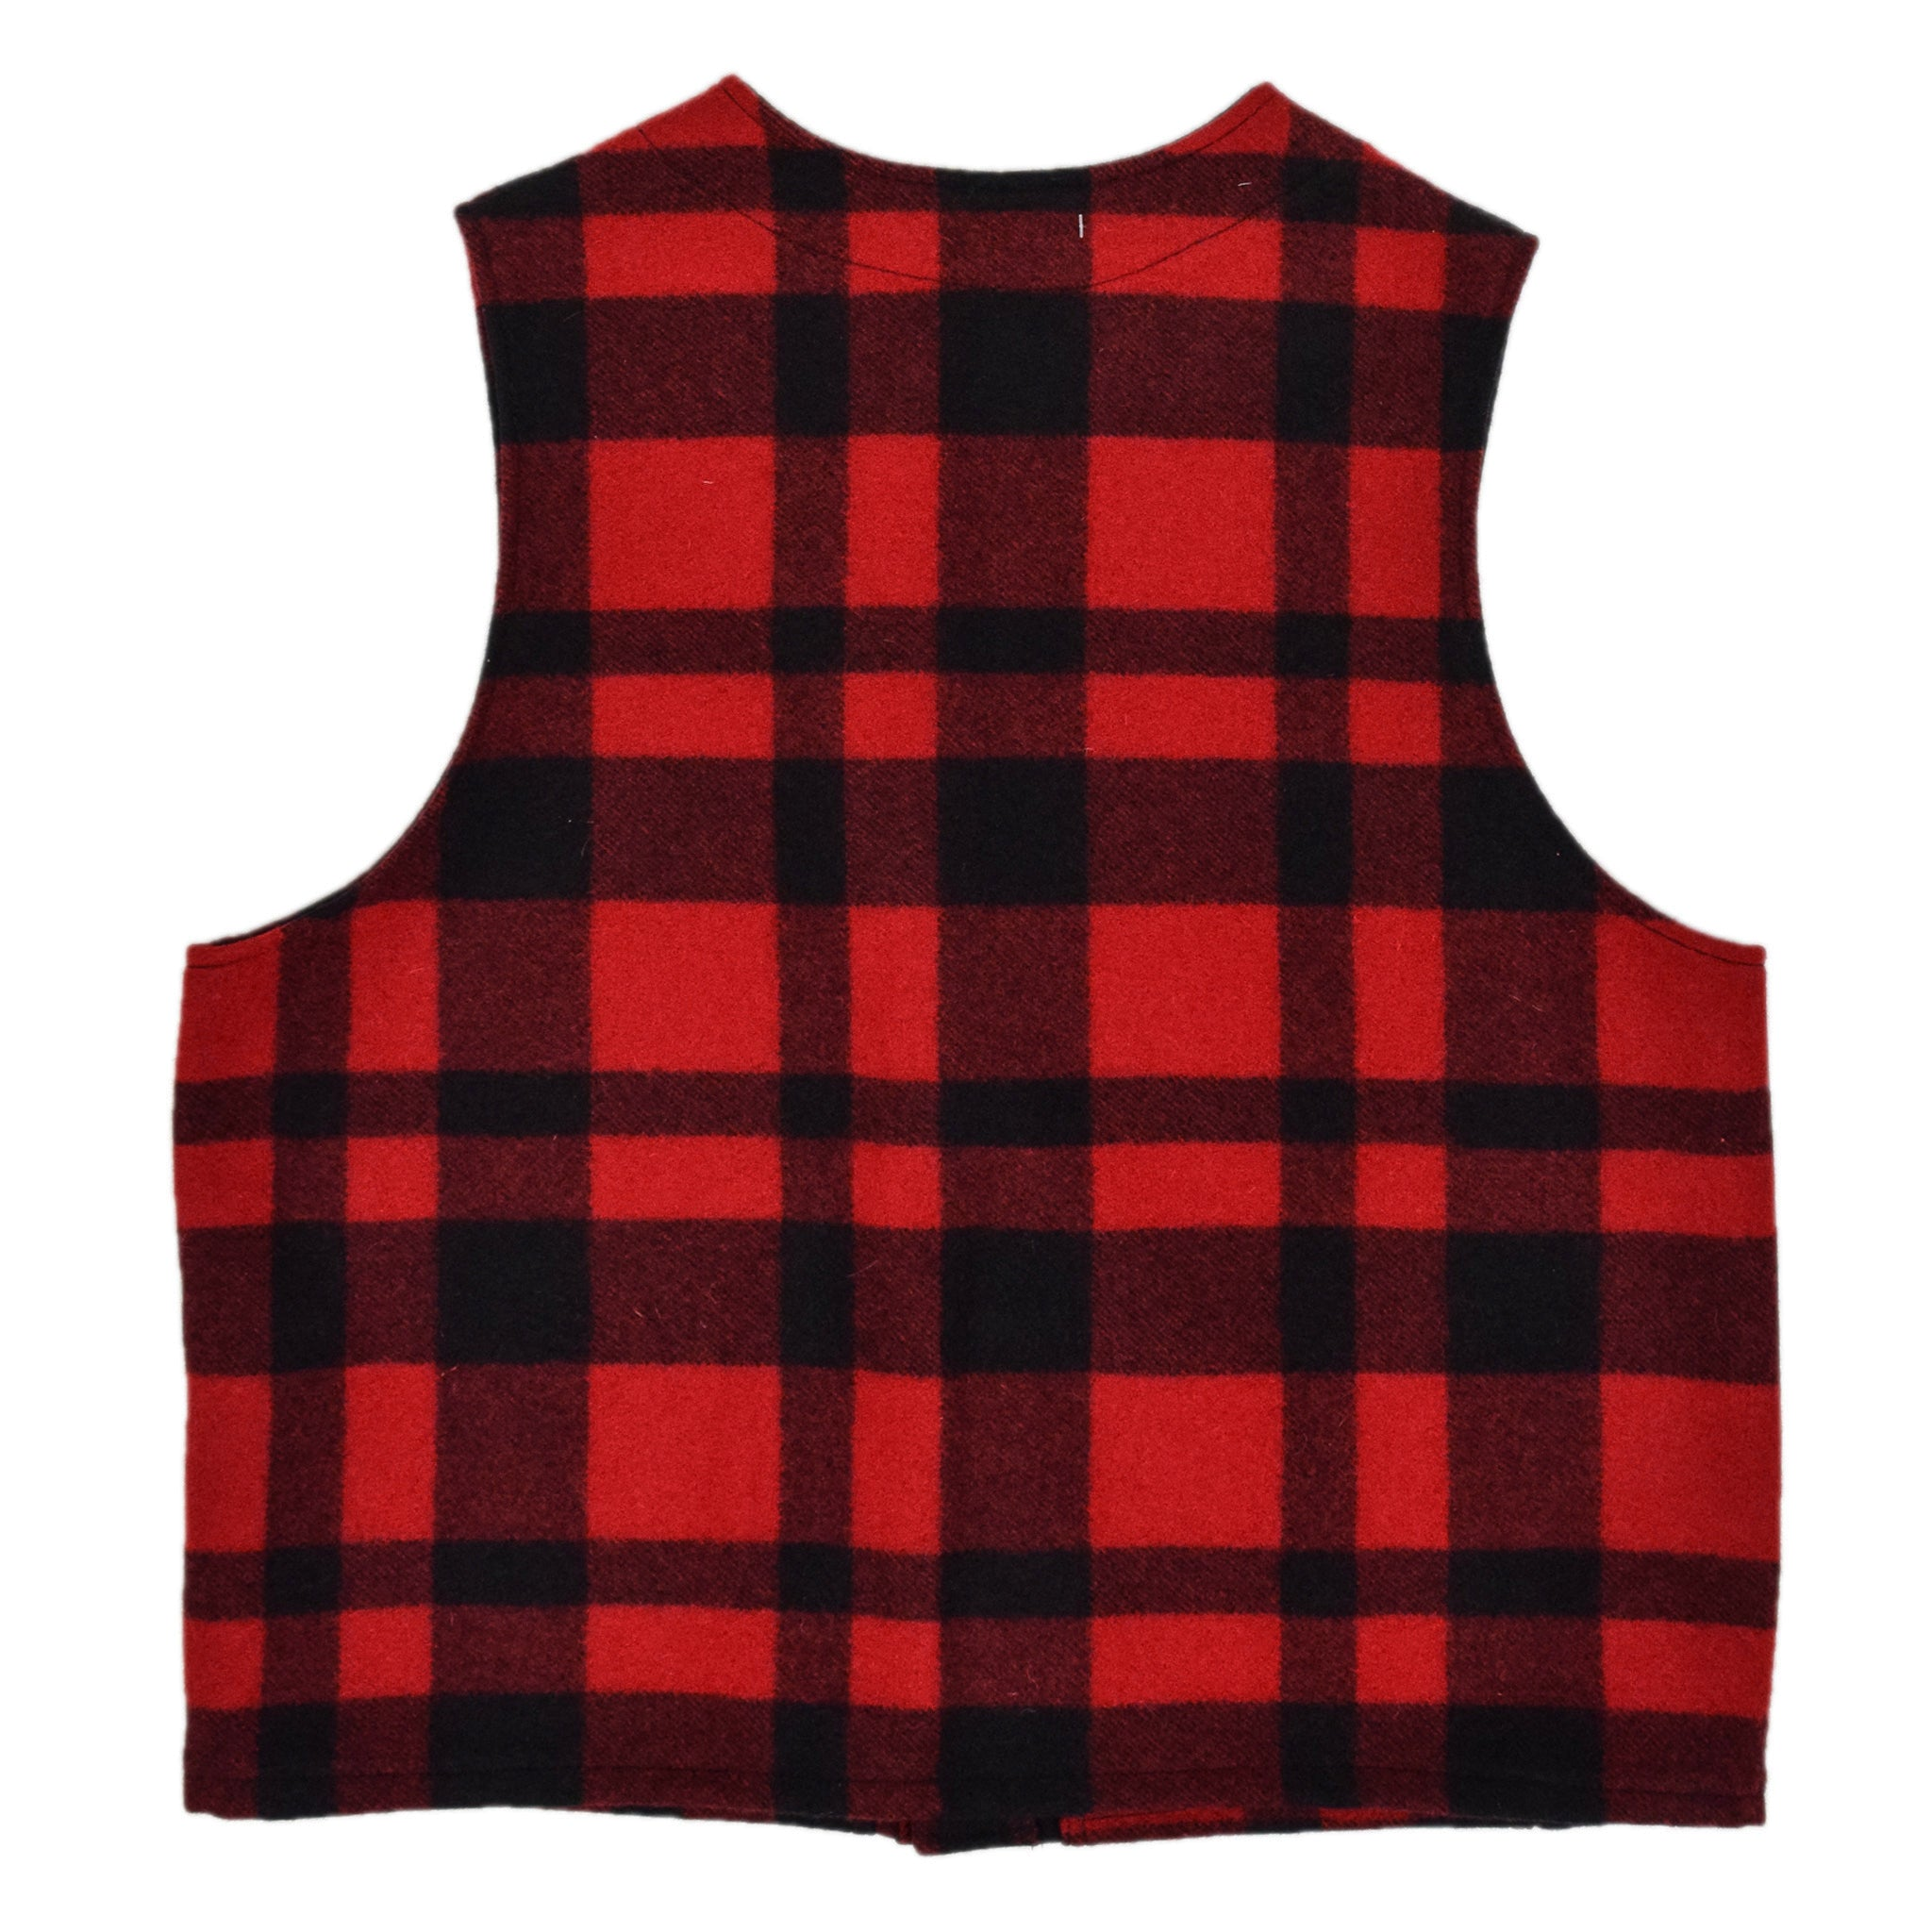 Filson Plaid Mackinaw Wool Hunting Cruiser Waistcoat Vest Made in USA XXL labels